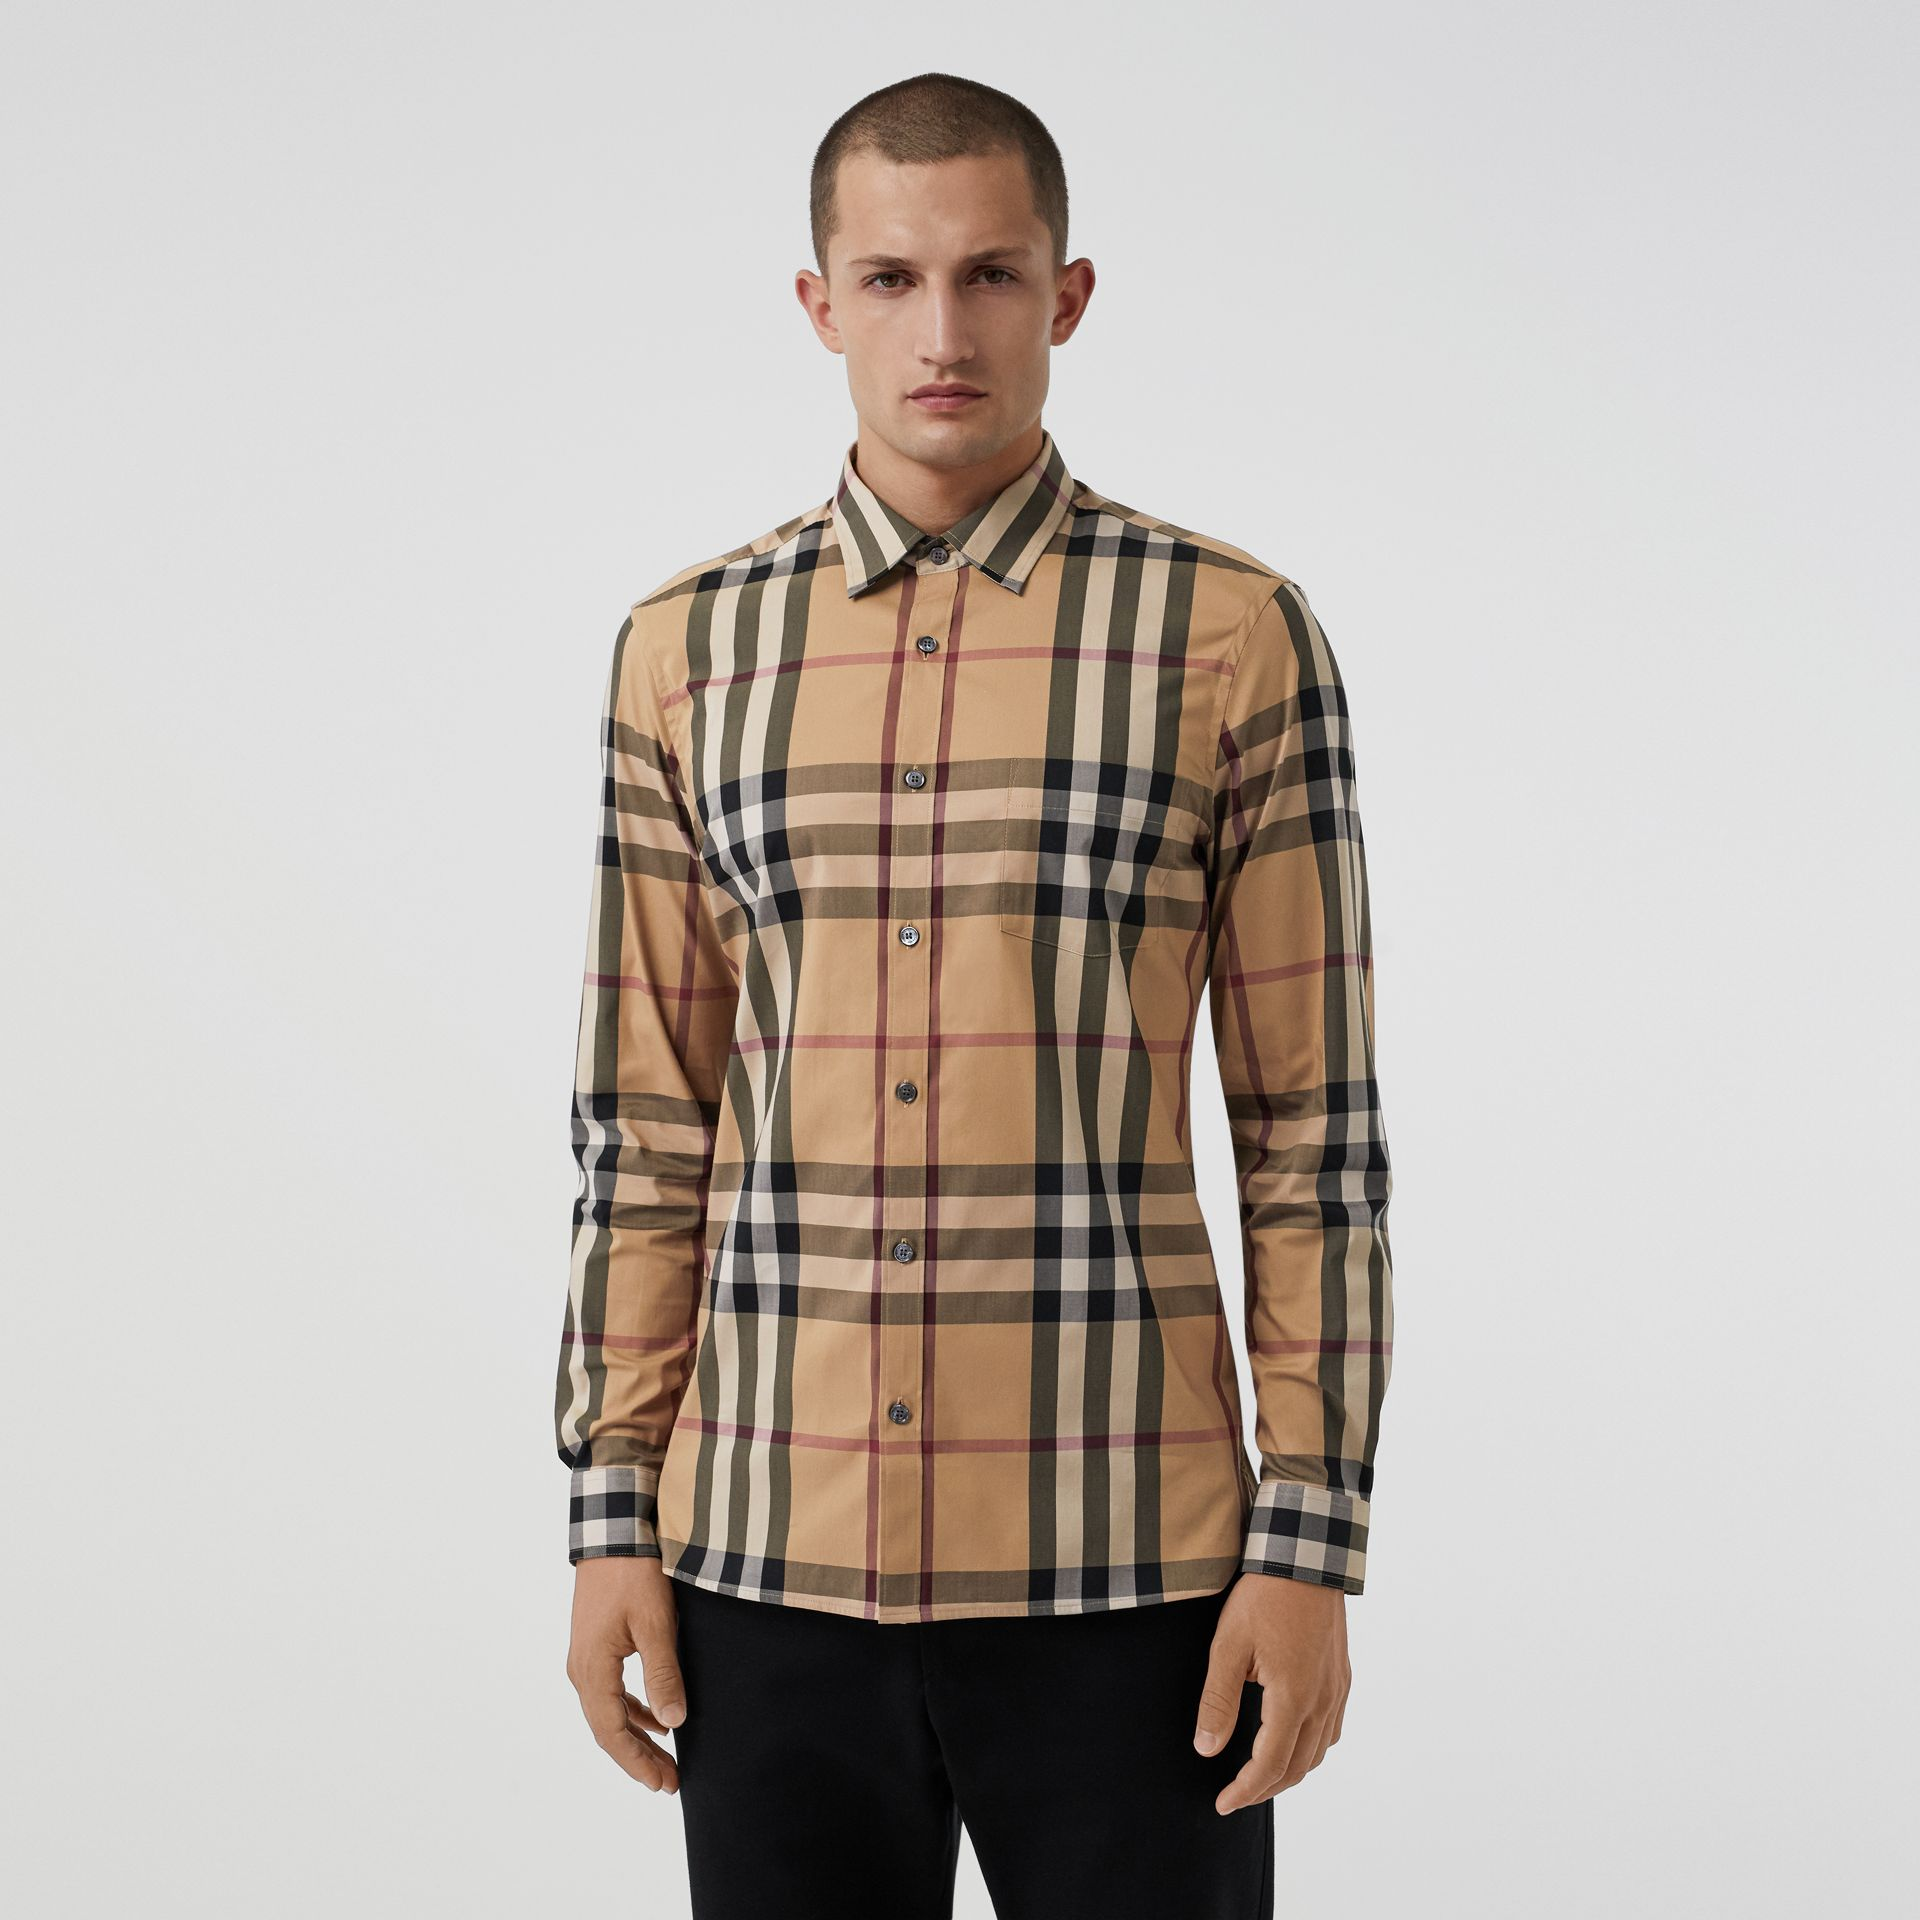 Chemise en coton extensible à motif check (Camel) - Homme   Burberry - photo 062e1d527b0